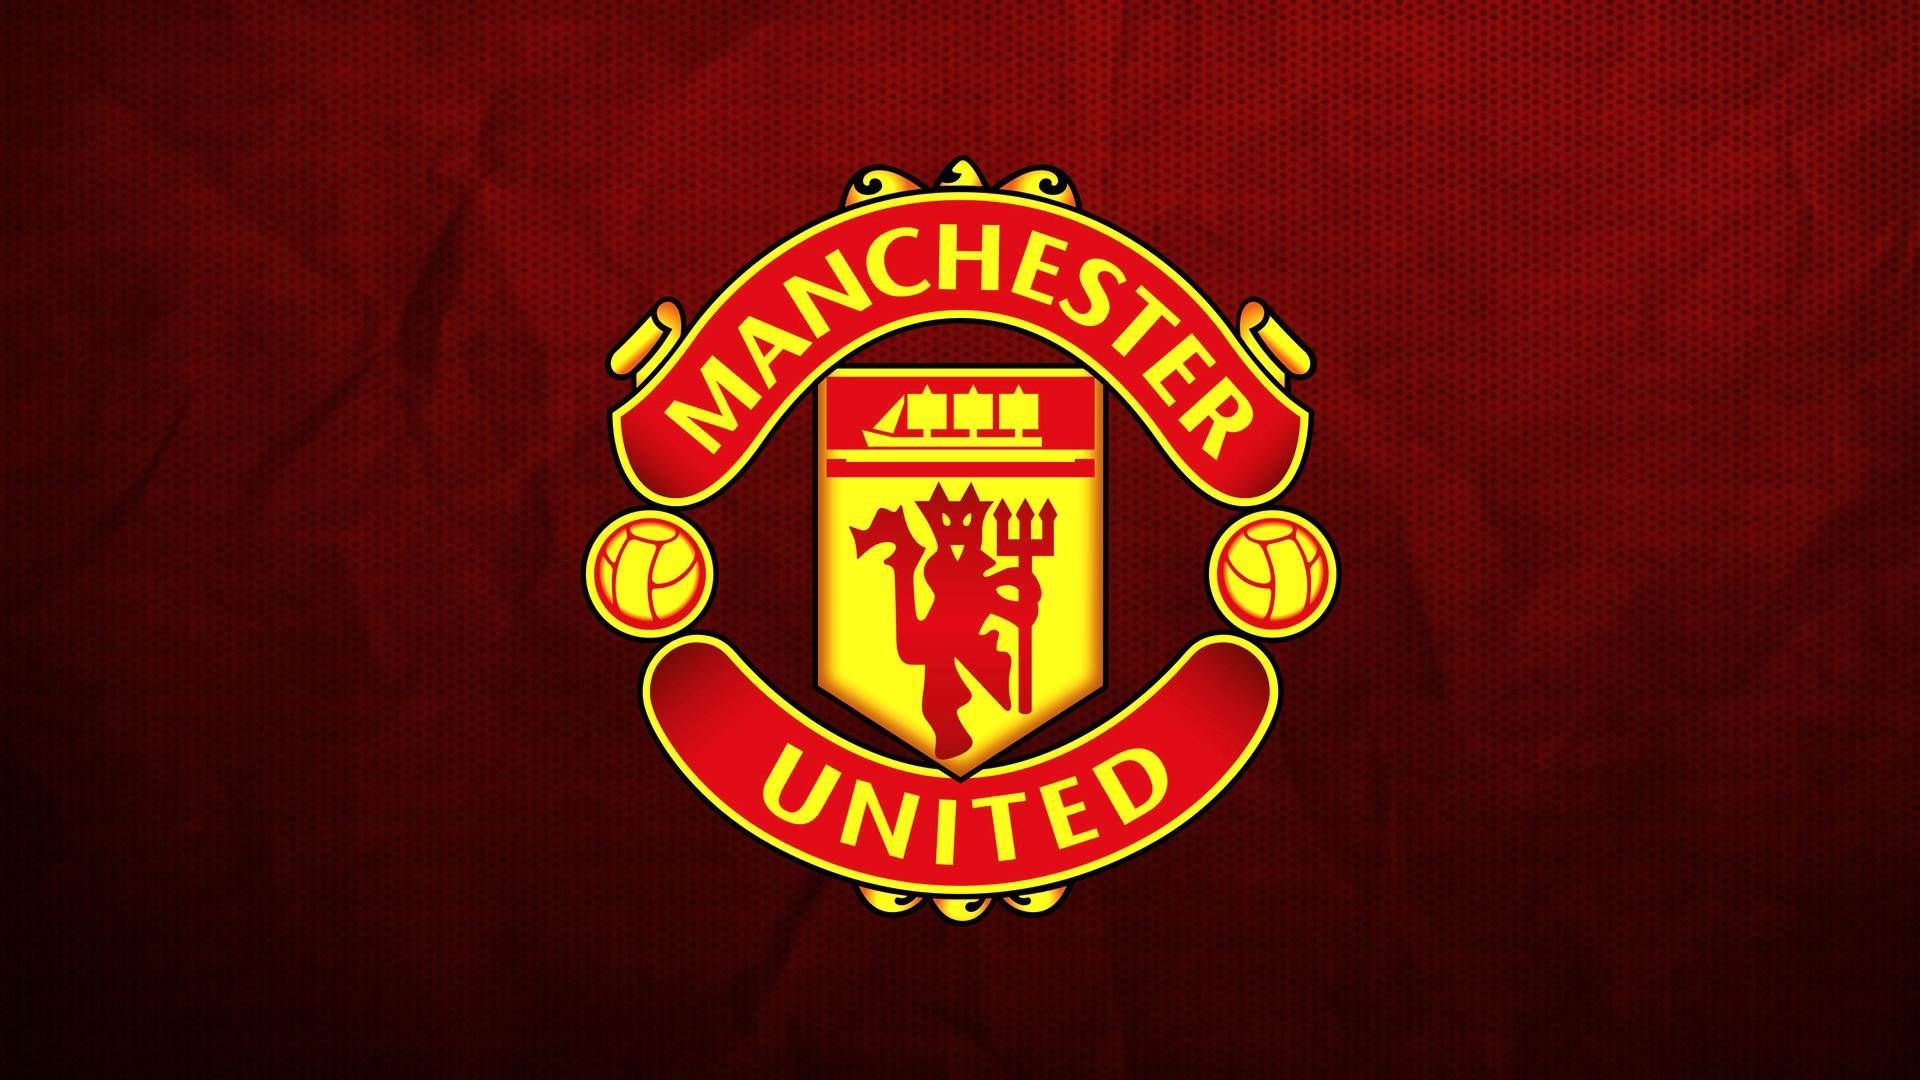 manchester united logo wallpapers hd wallpaper 640×1136 wallpapers